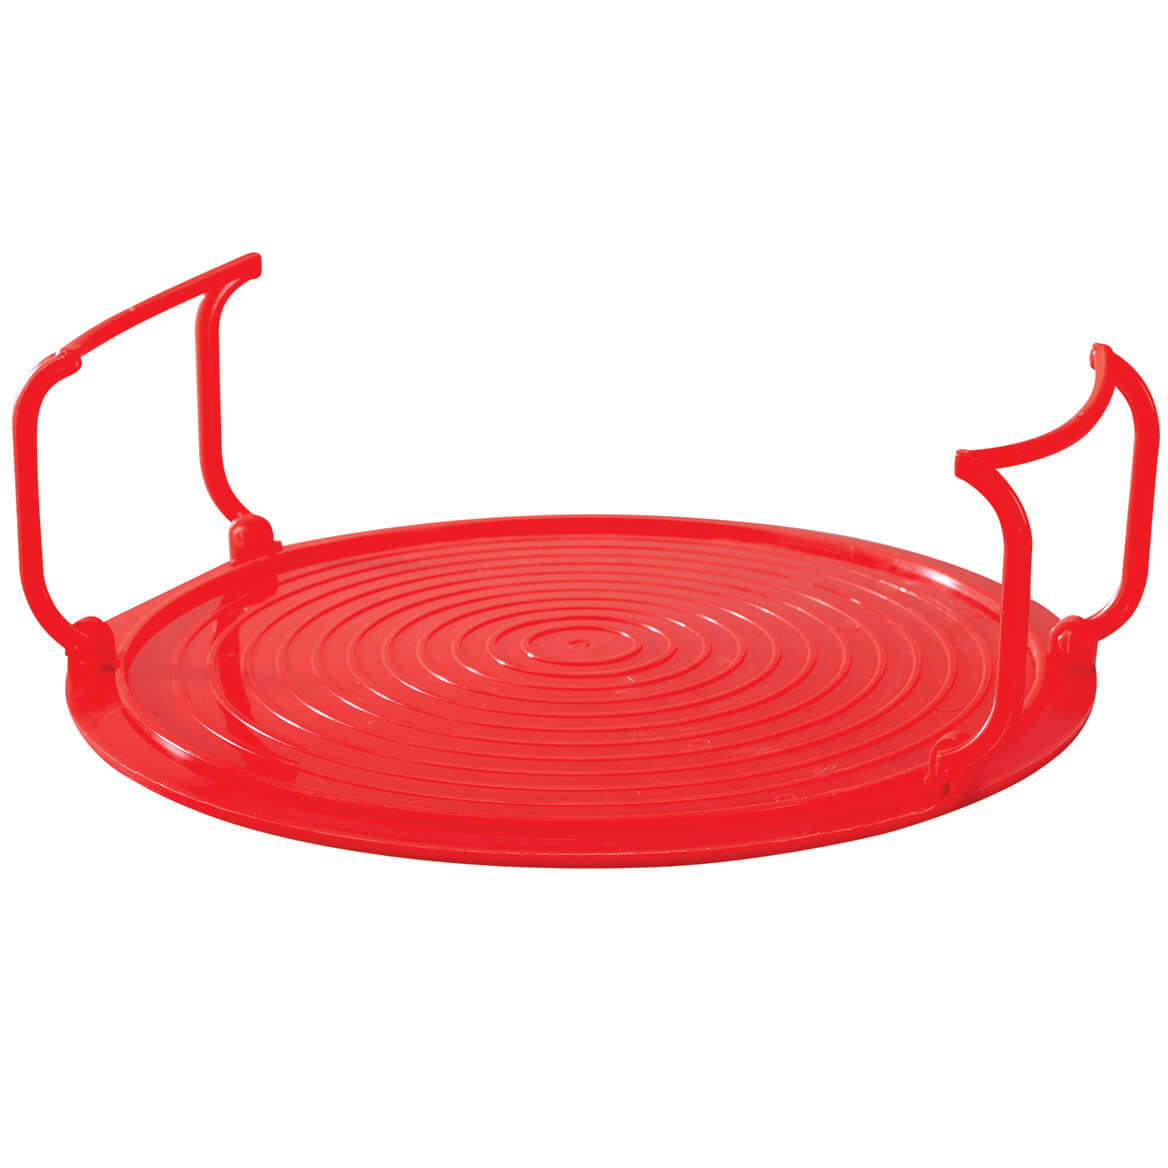 3 In 1 Microwave Tray-370371